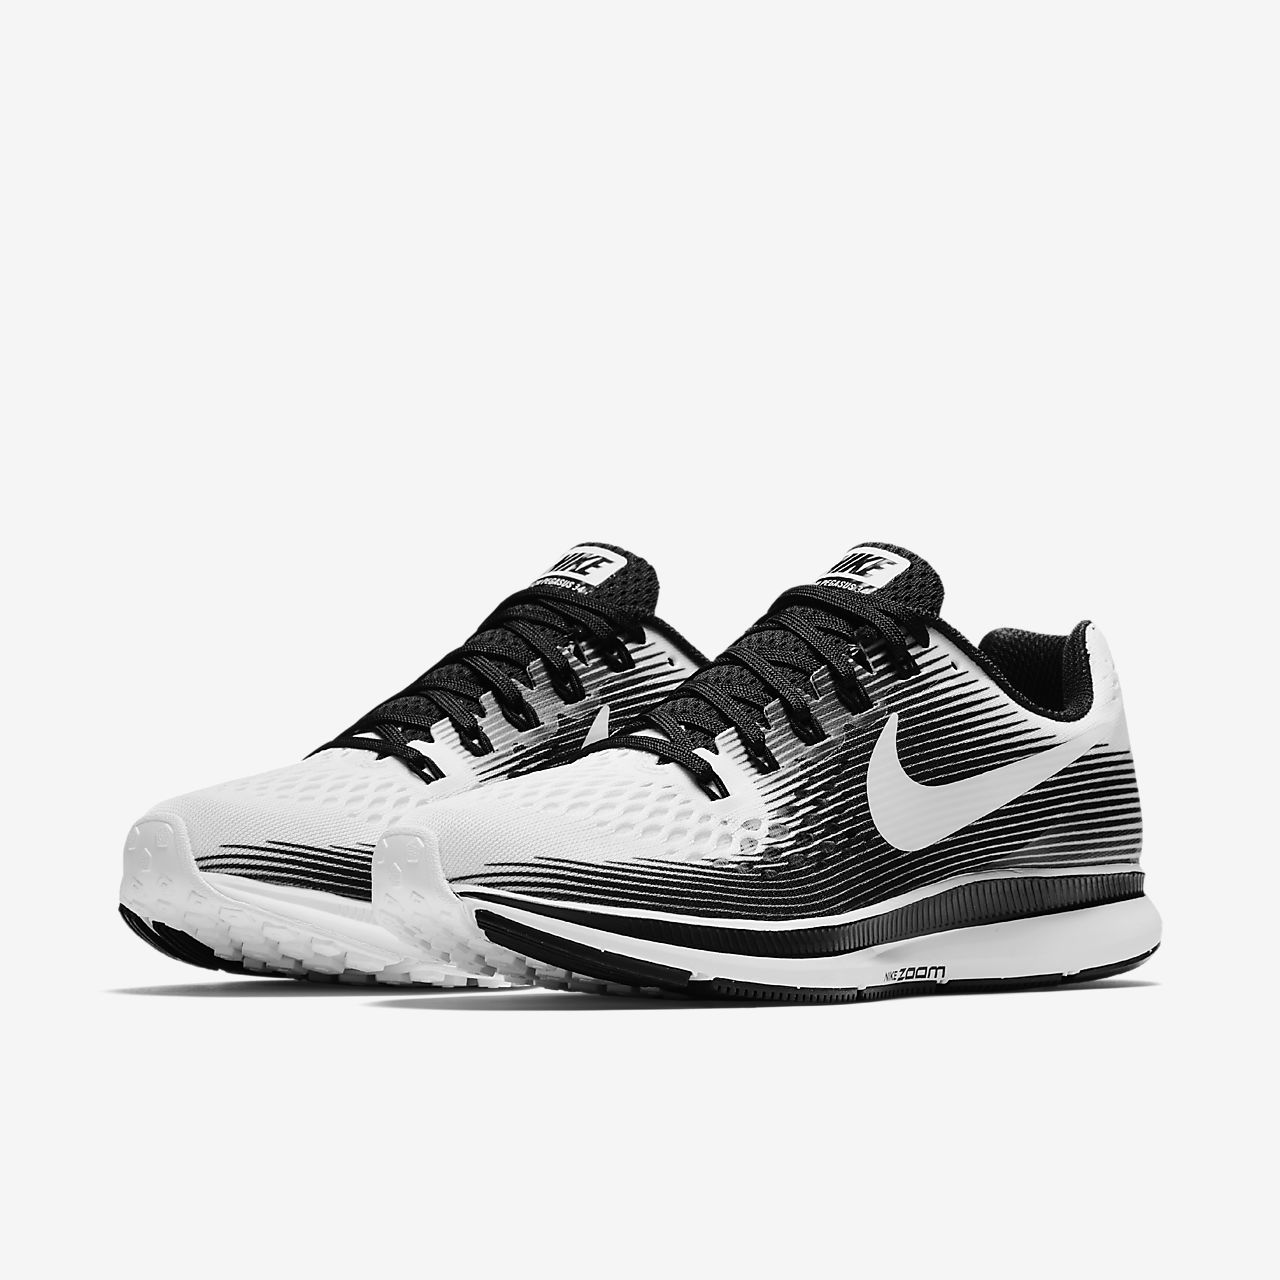 official photos 6f9cb a7cbd Nike Air Zoom Pegasus 34 Limited Edition Women's Running ...